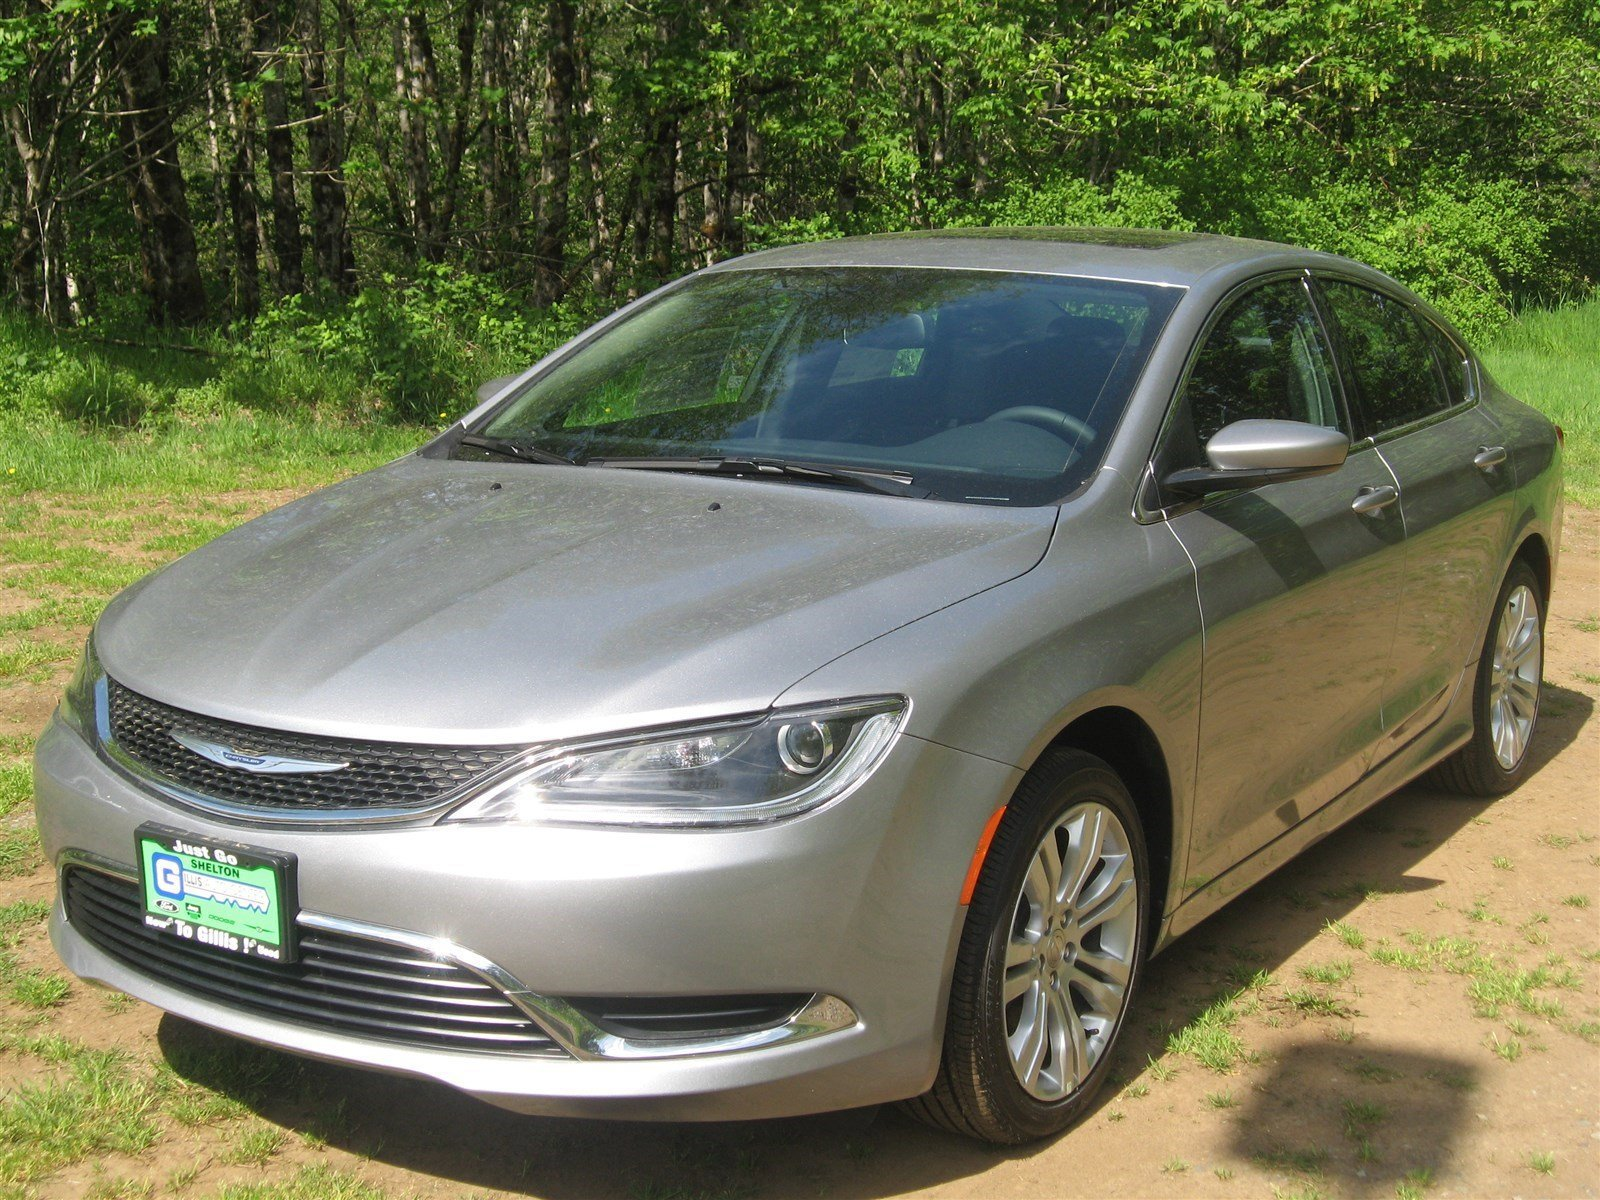 New 2016 Chrysler 200 4dr Sdn Limited FWD